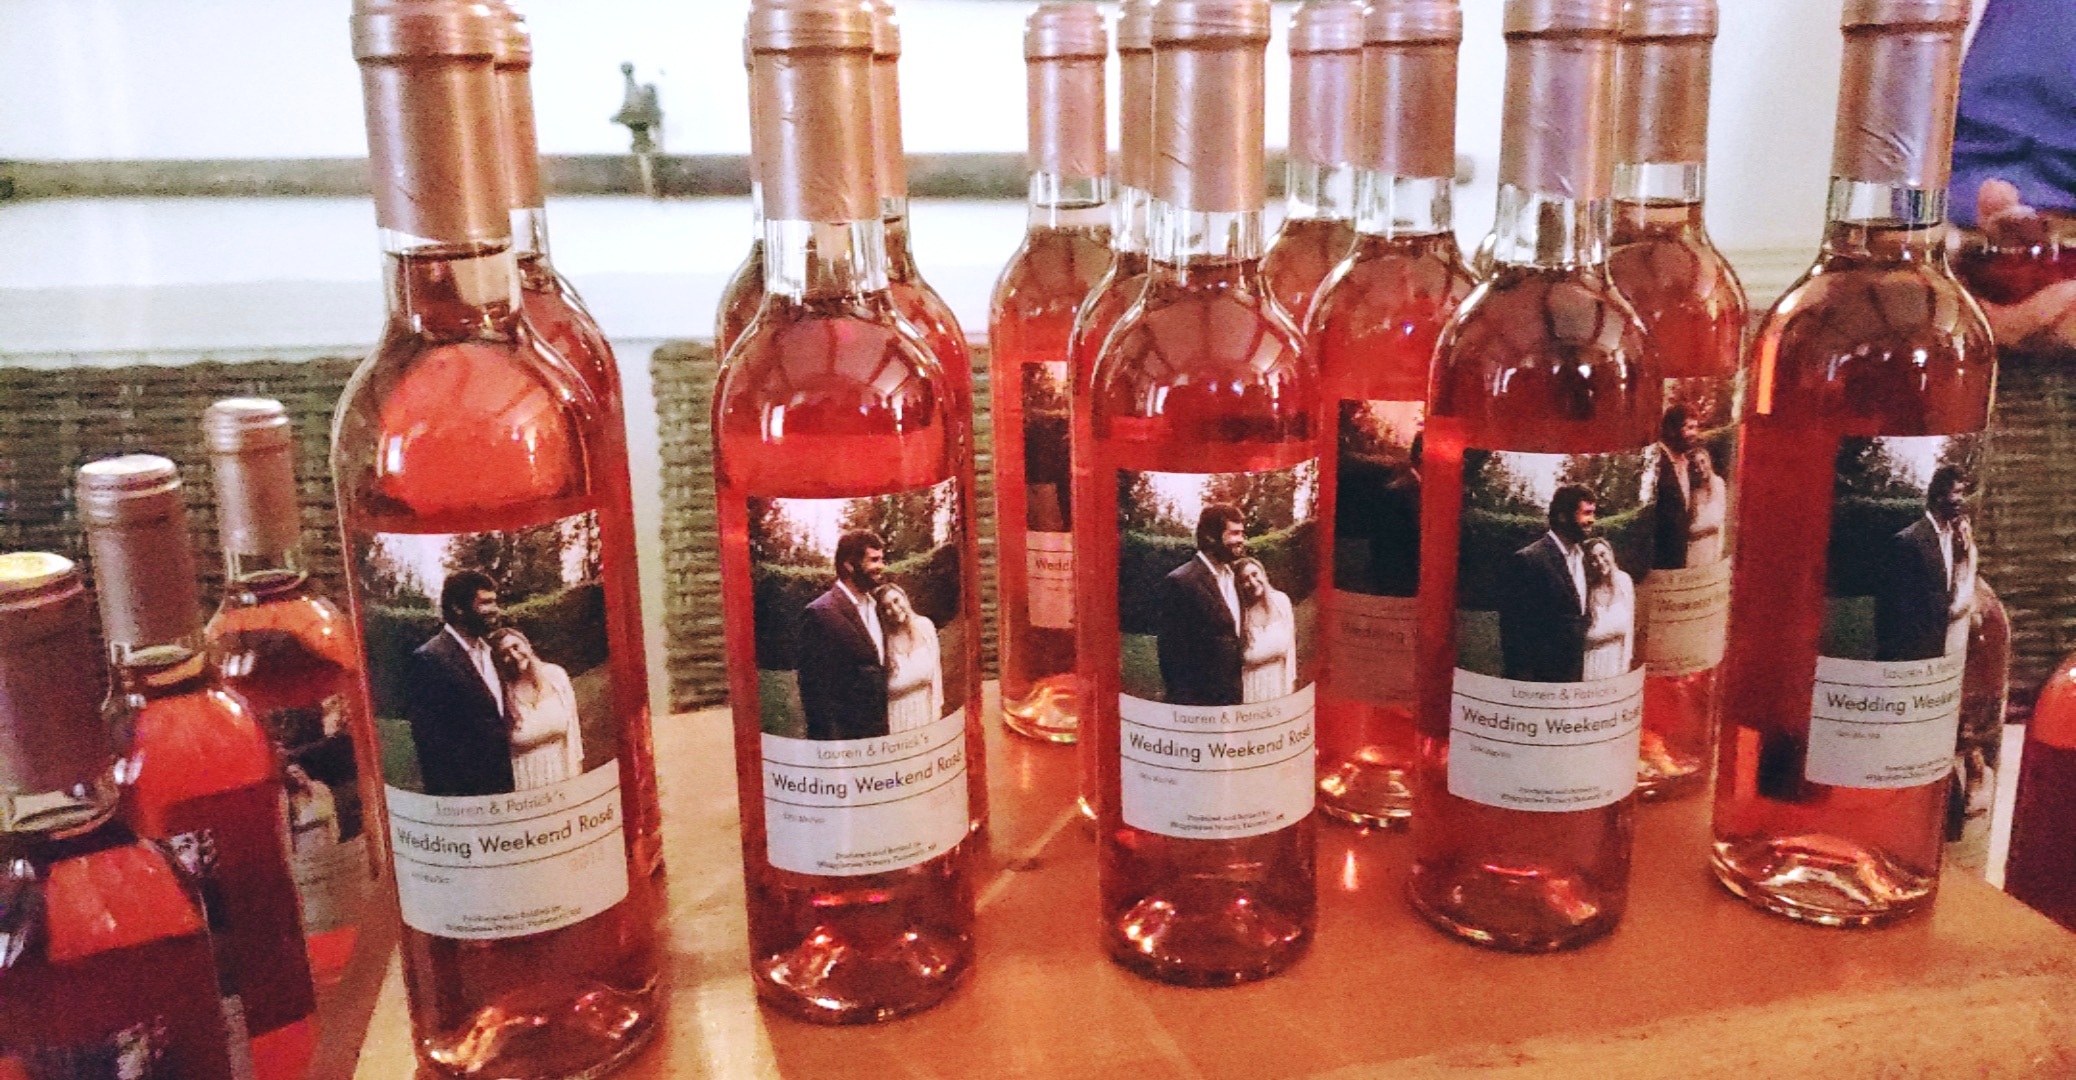 Custom Rose' bottles from Whippletree Winery welcomed guests as they arrived for the weekend.